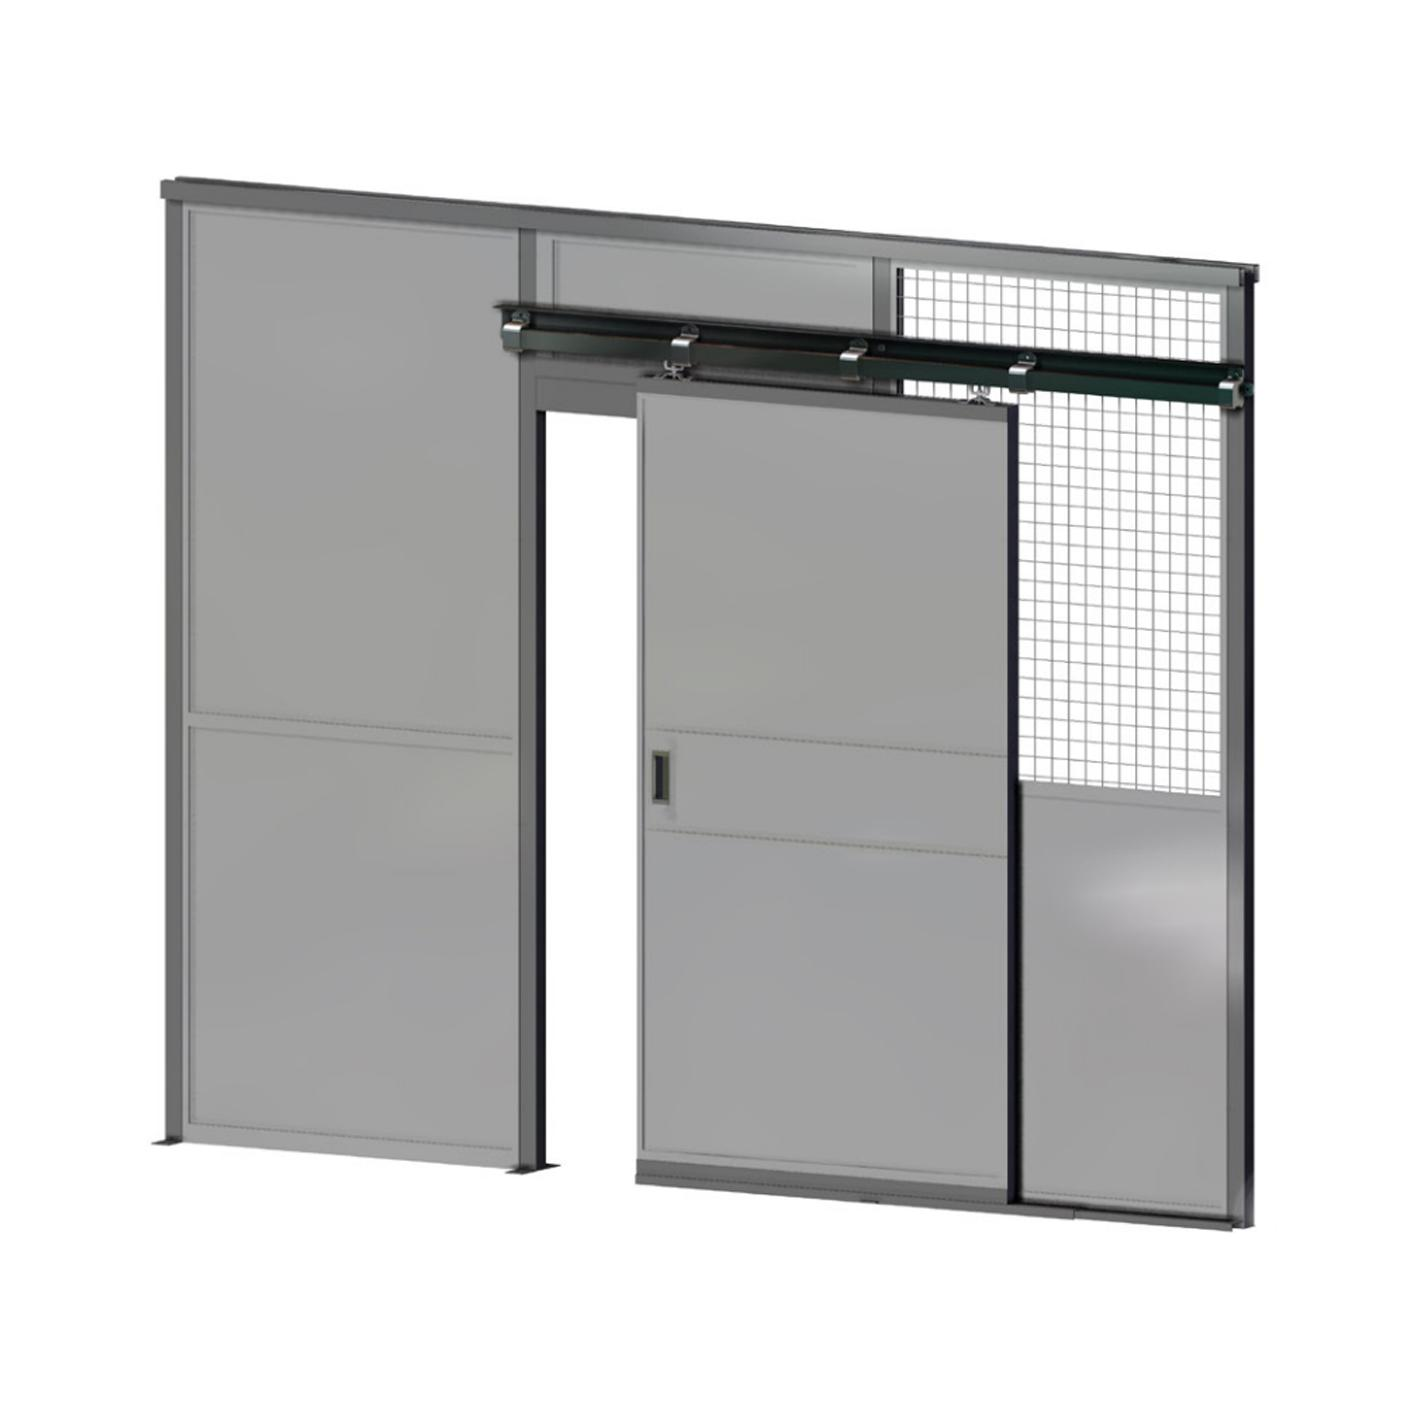 Commercial partitioning, Sliding doors